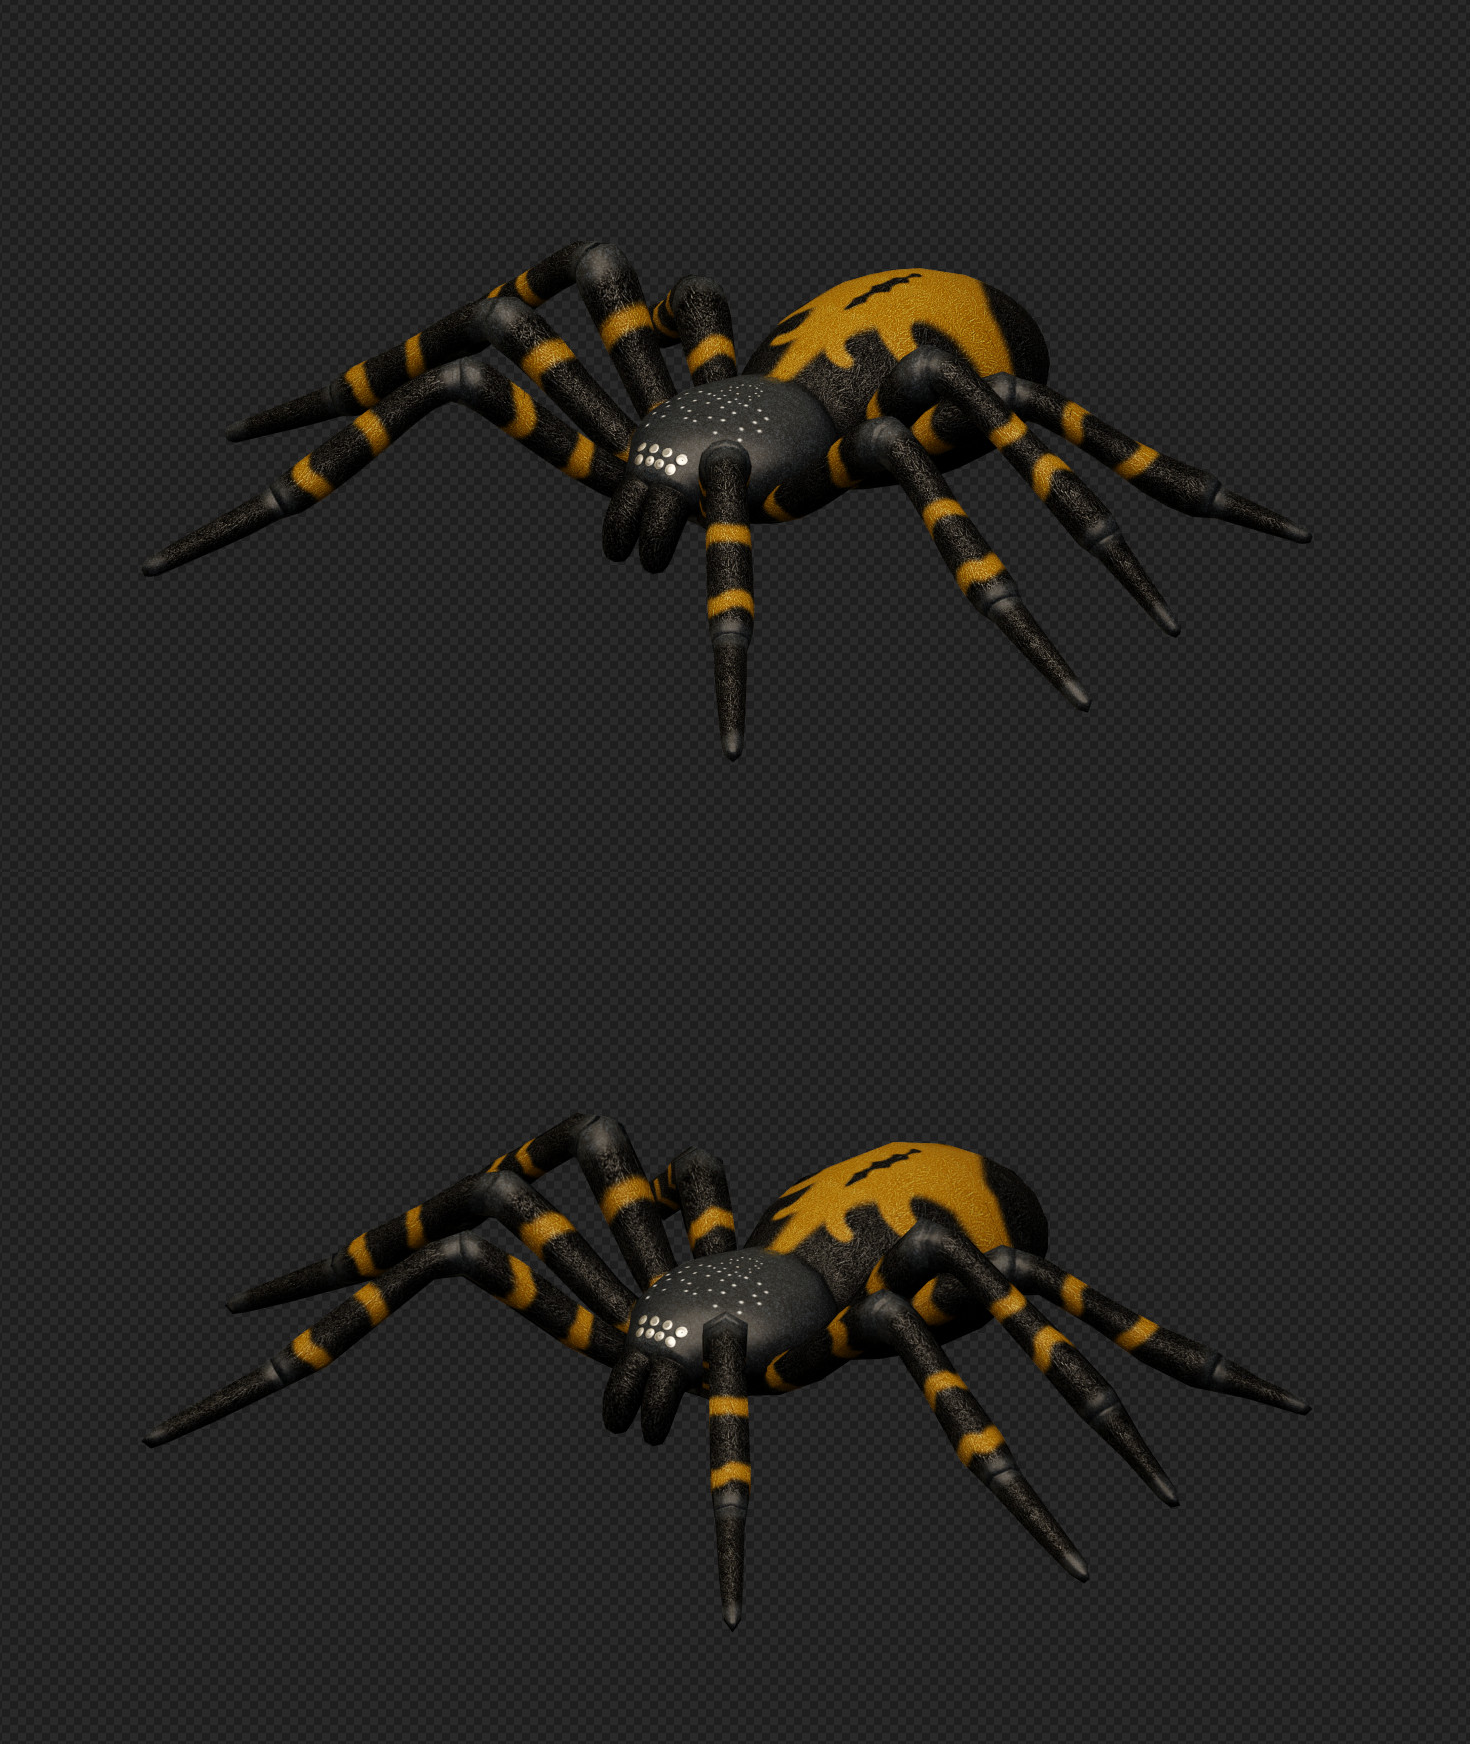 spider_render_compare.jpg